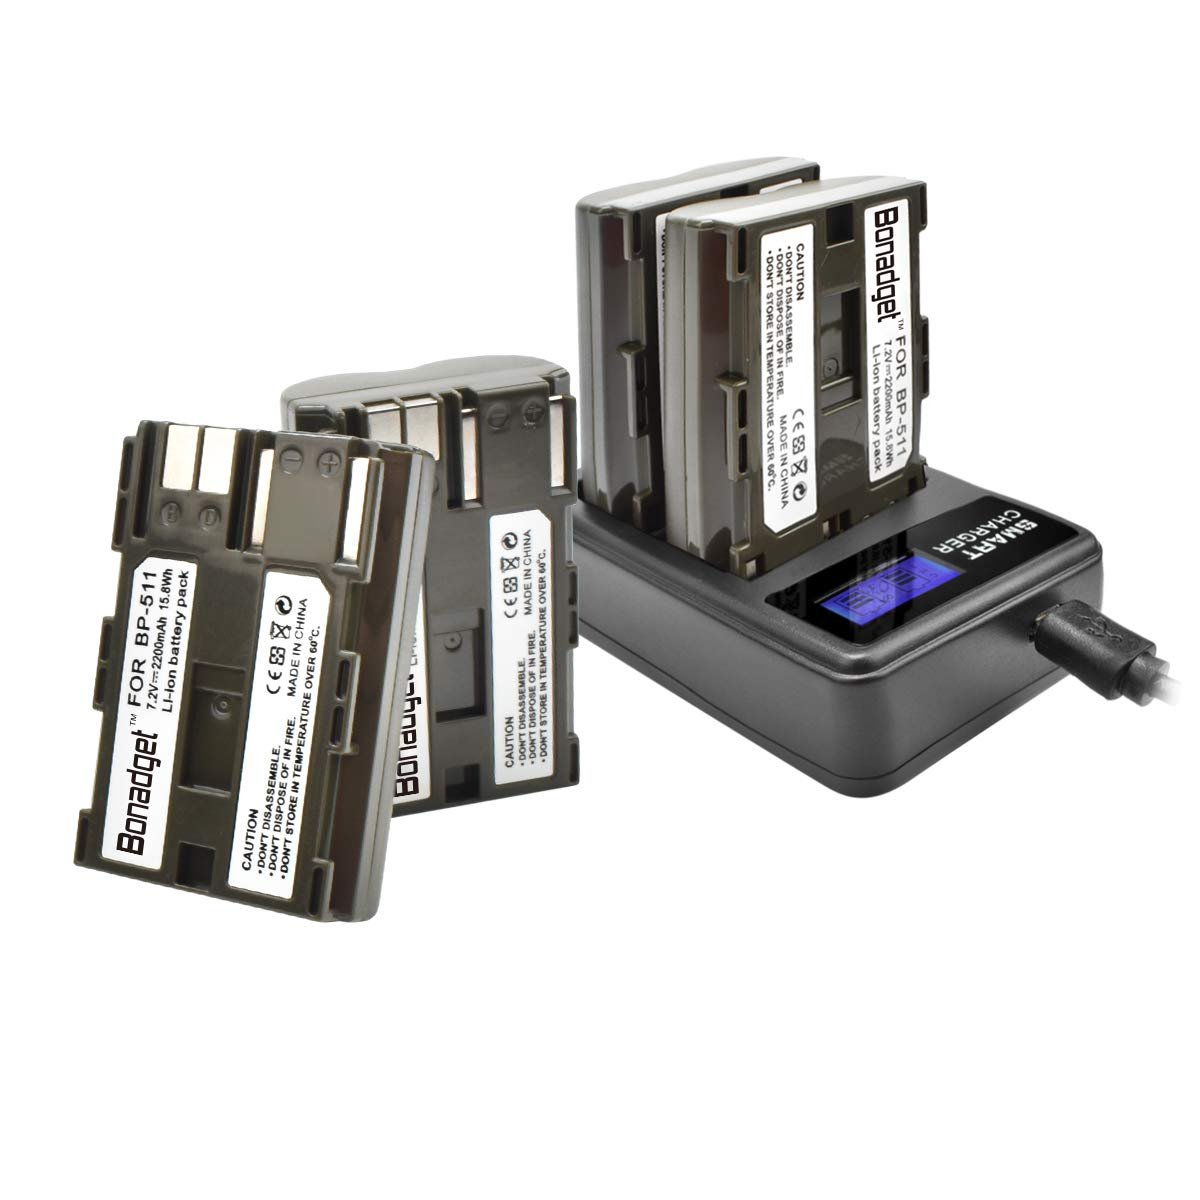 Bonadget 4 Pack 2200mAh BP-511 BP-511A Replacement Battery and LCD Dual Charger Compatible with Canon Rebel EOS 5D 40D 20D 50D 10D 30D 300D D30 D60 PowerShot G6 G5 G3 G2 G1